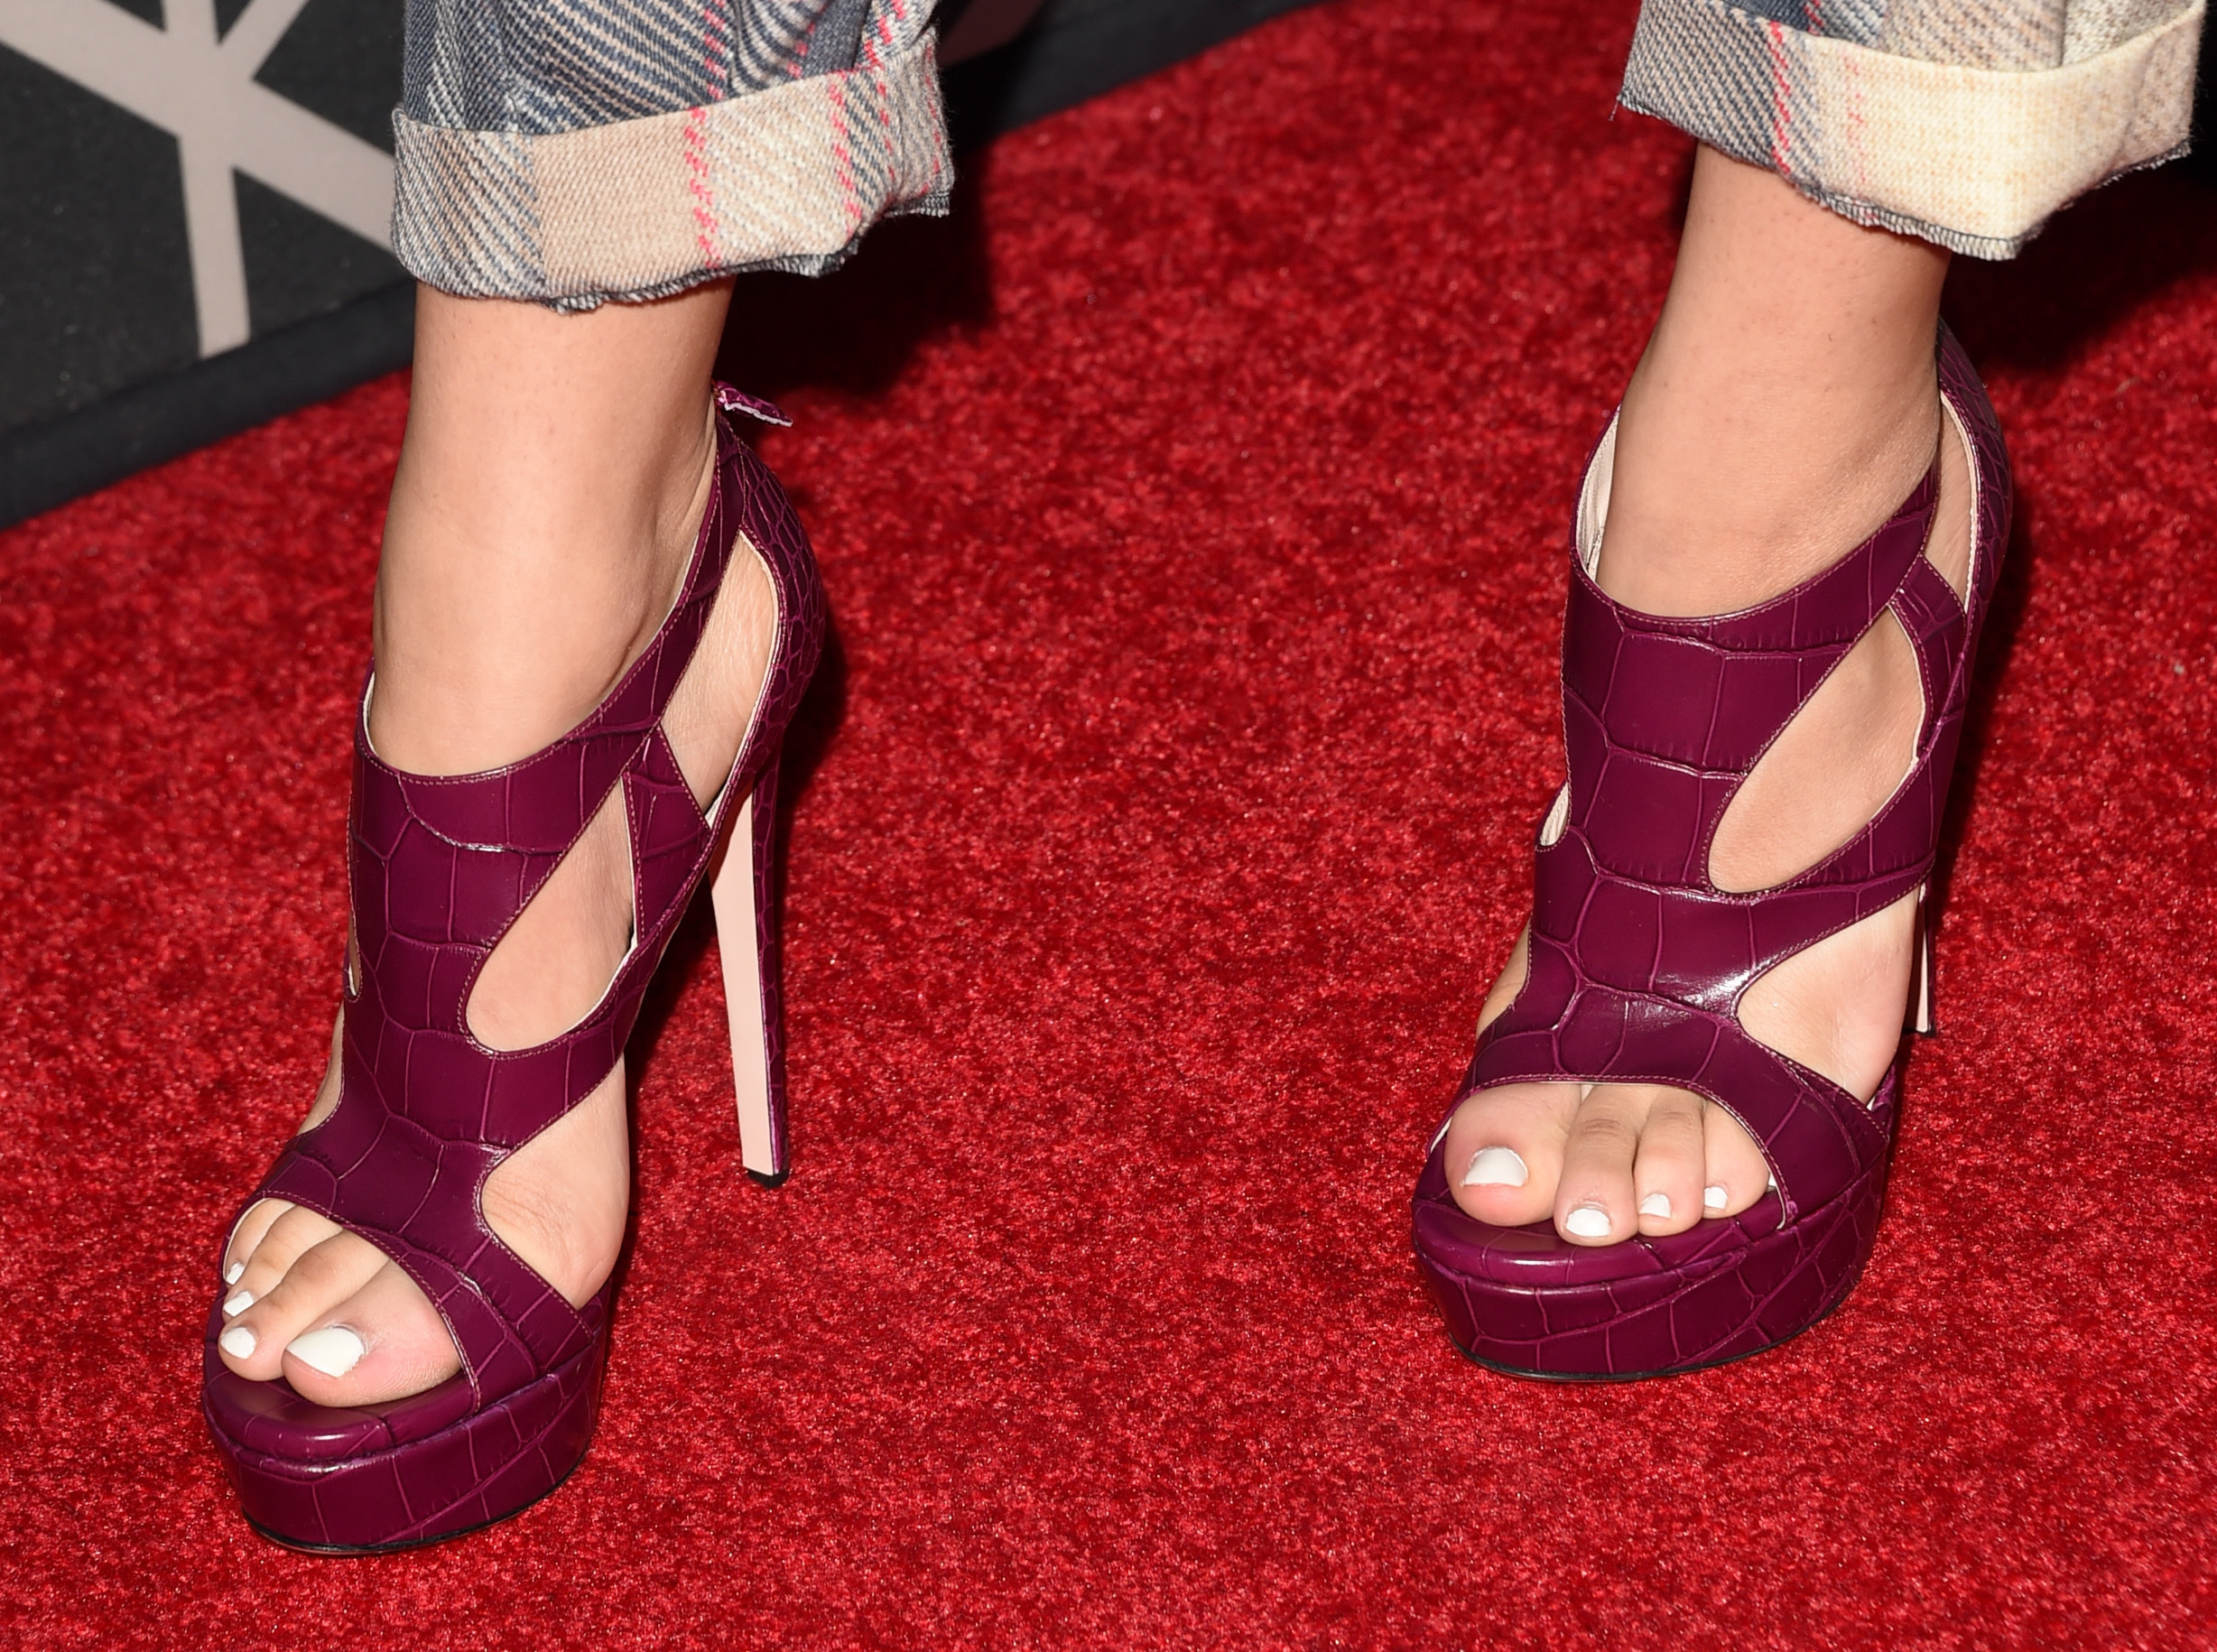 FASHION: Wine SHOES. Pick your Fav! - Actresses